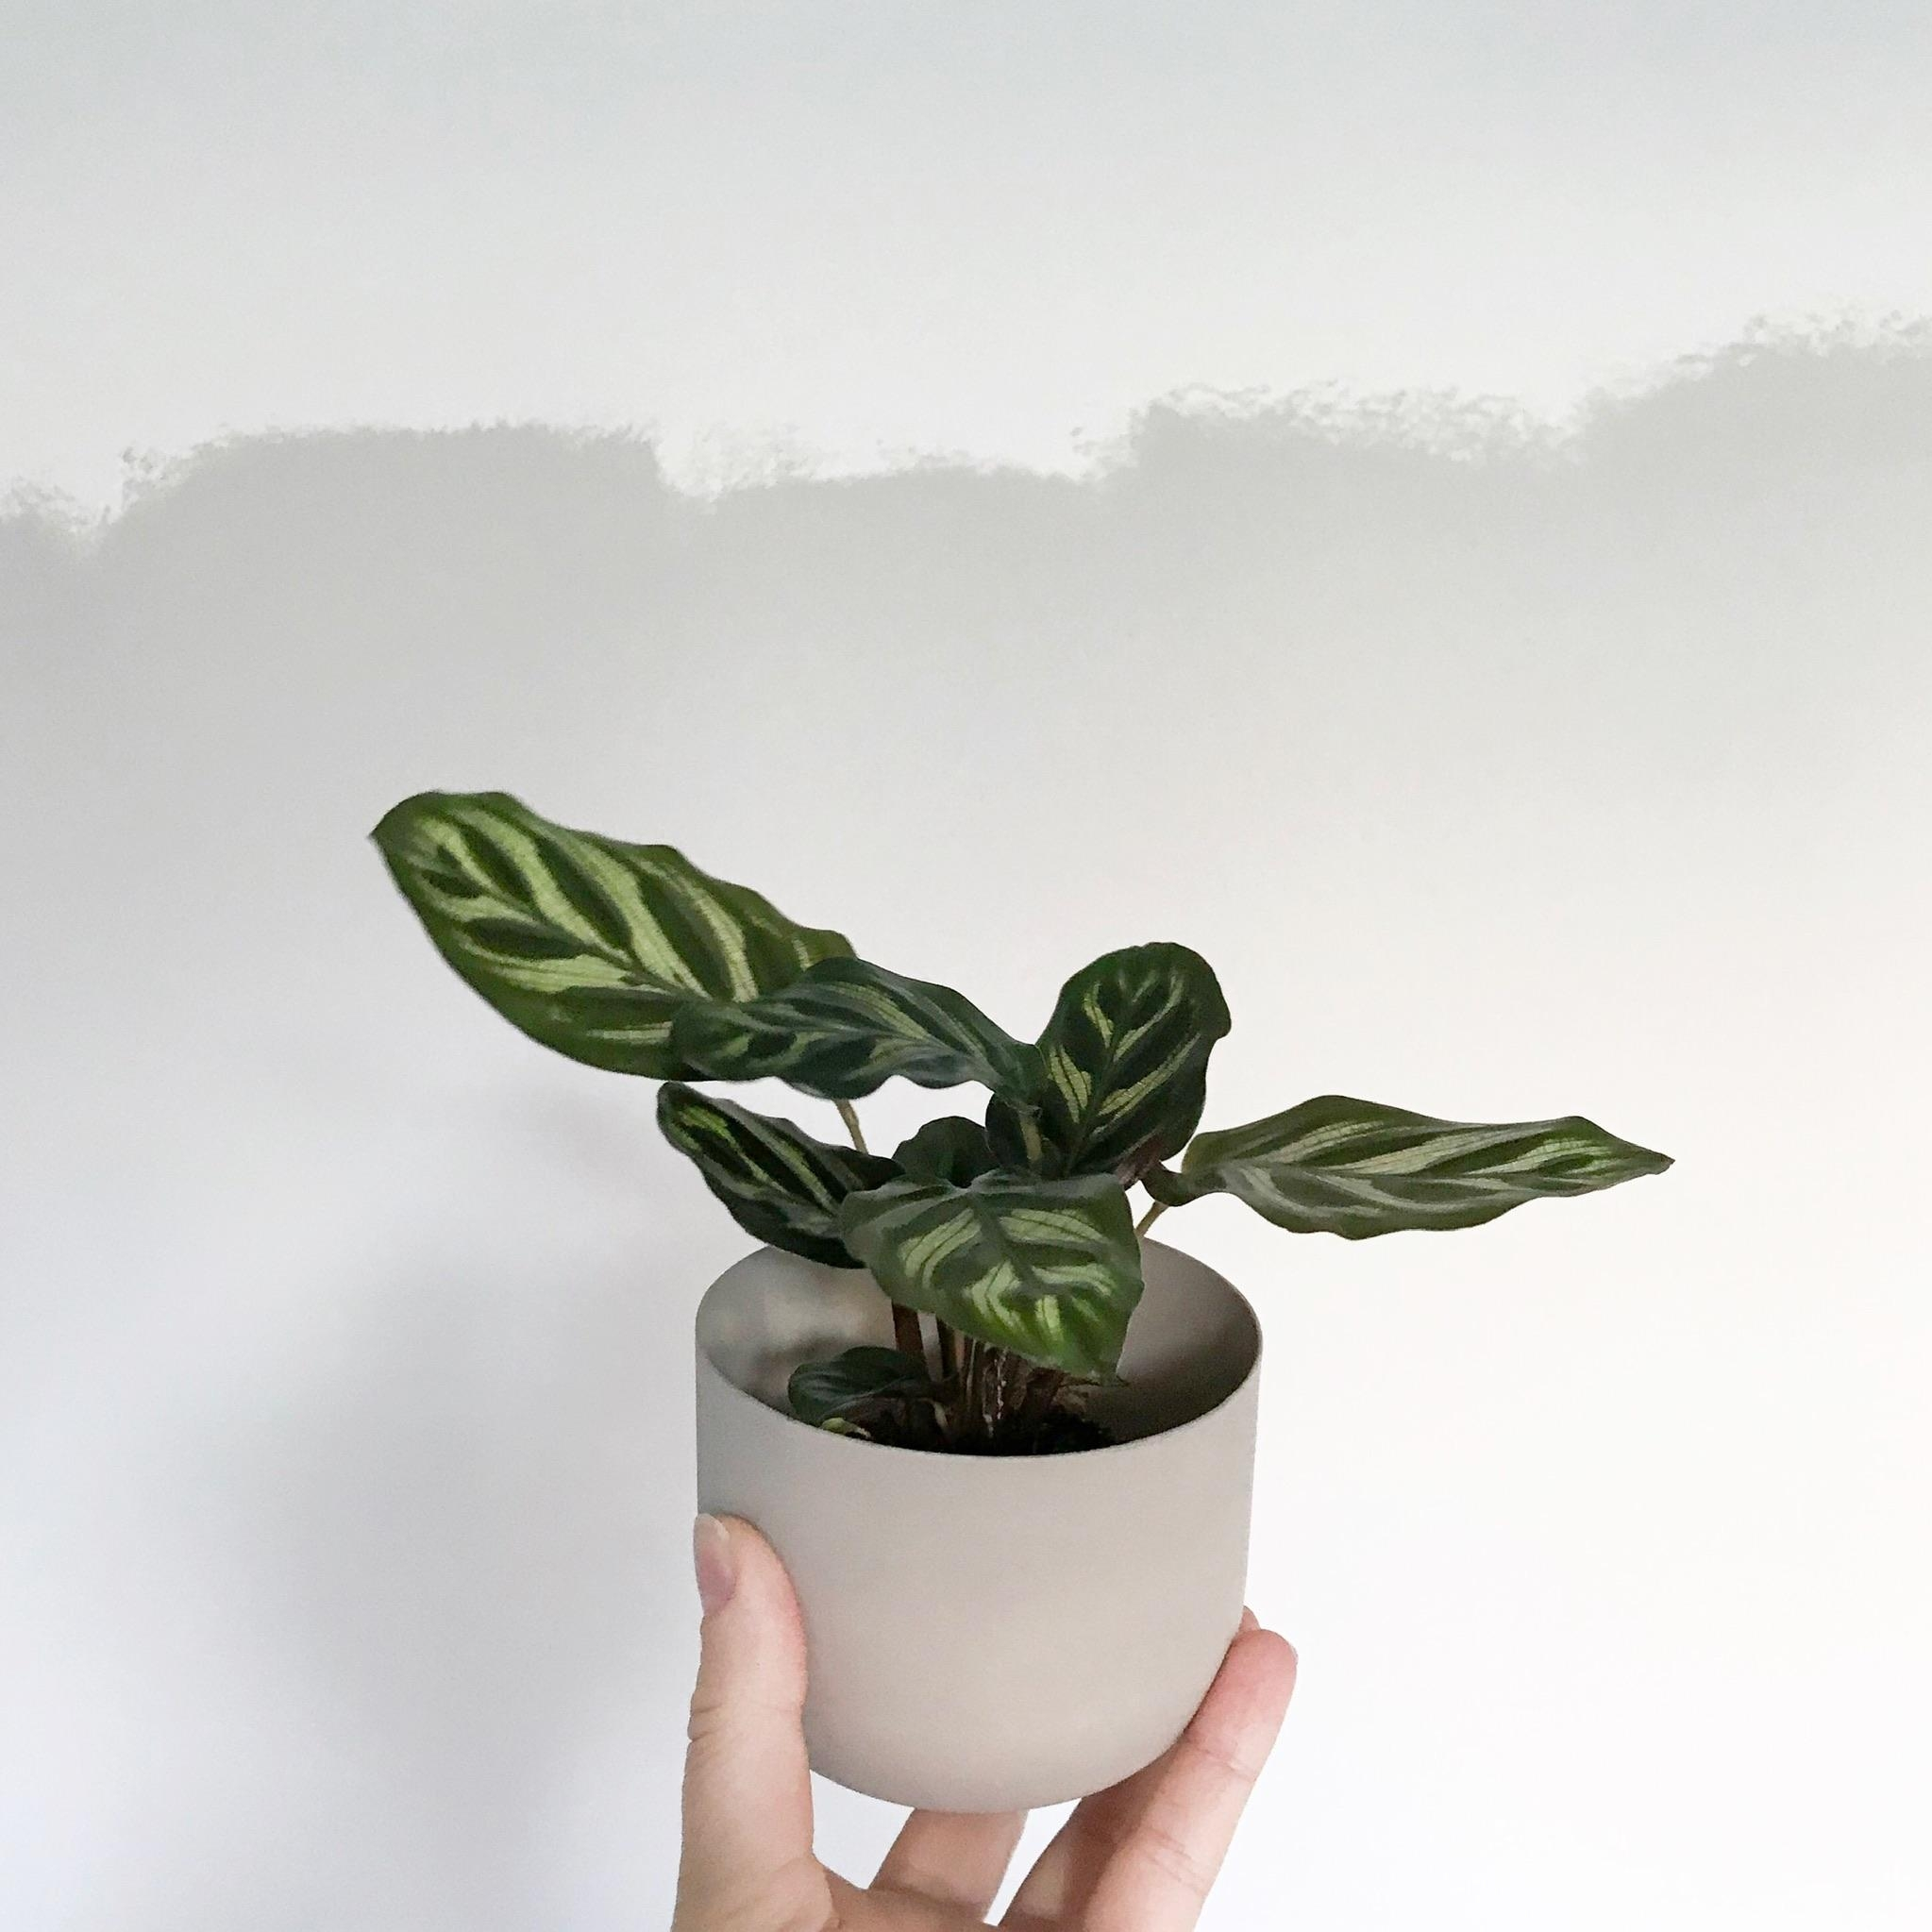 Neues Familienmitglied! 